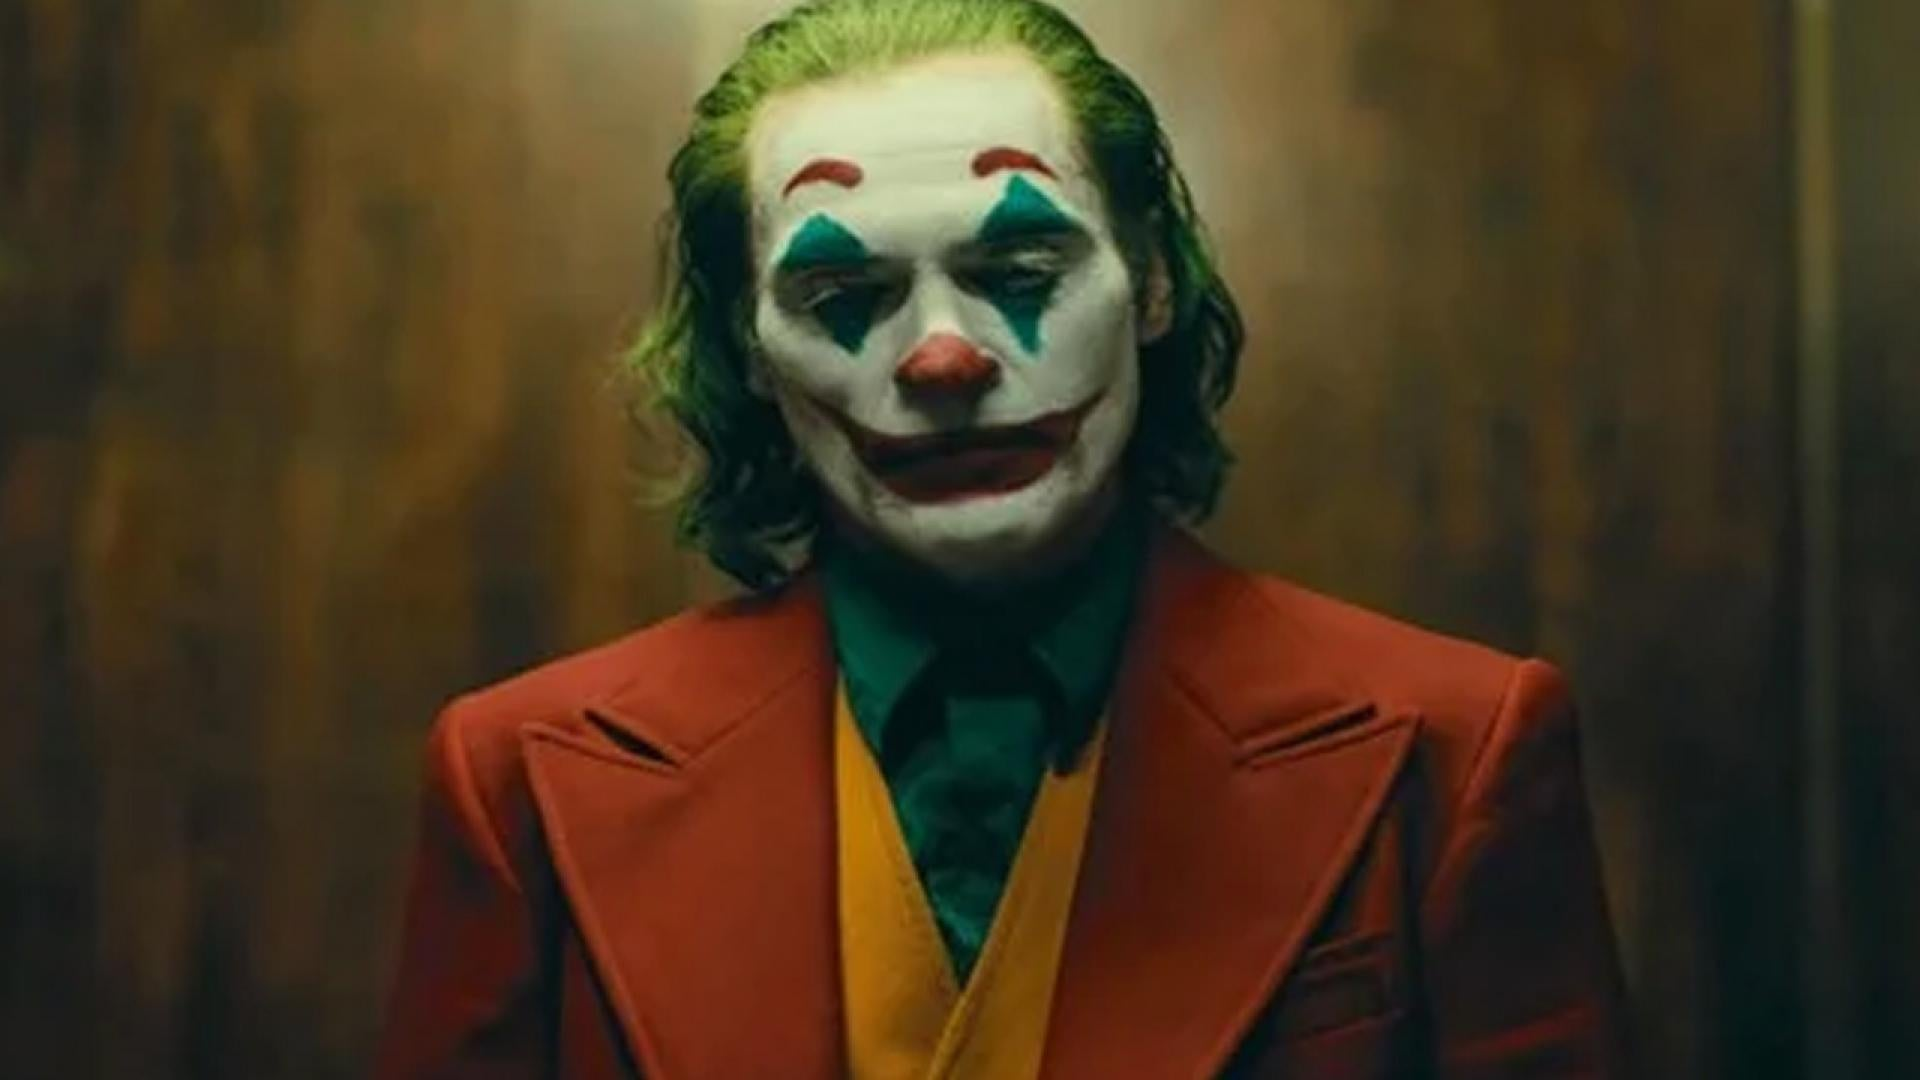 """Is """"Joker"""" dangerous? The new movie starring Joaquin Phoenix is facing backlash from some before it even opens."""